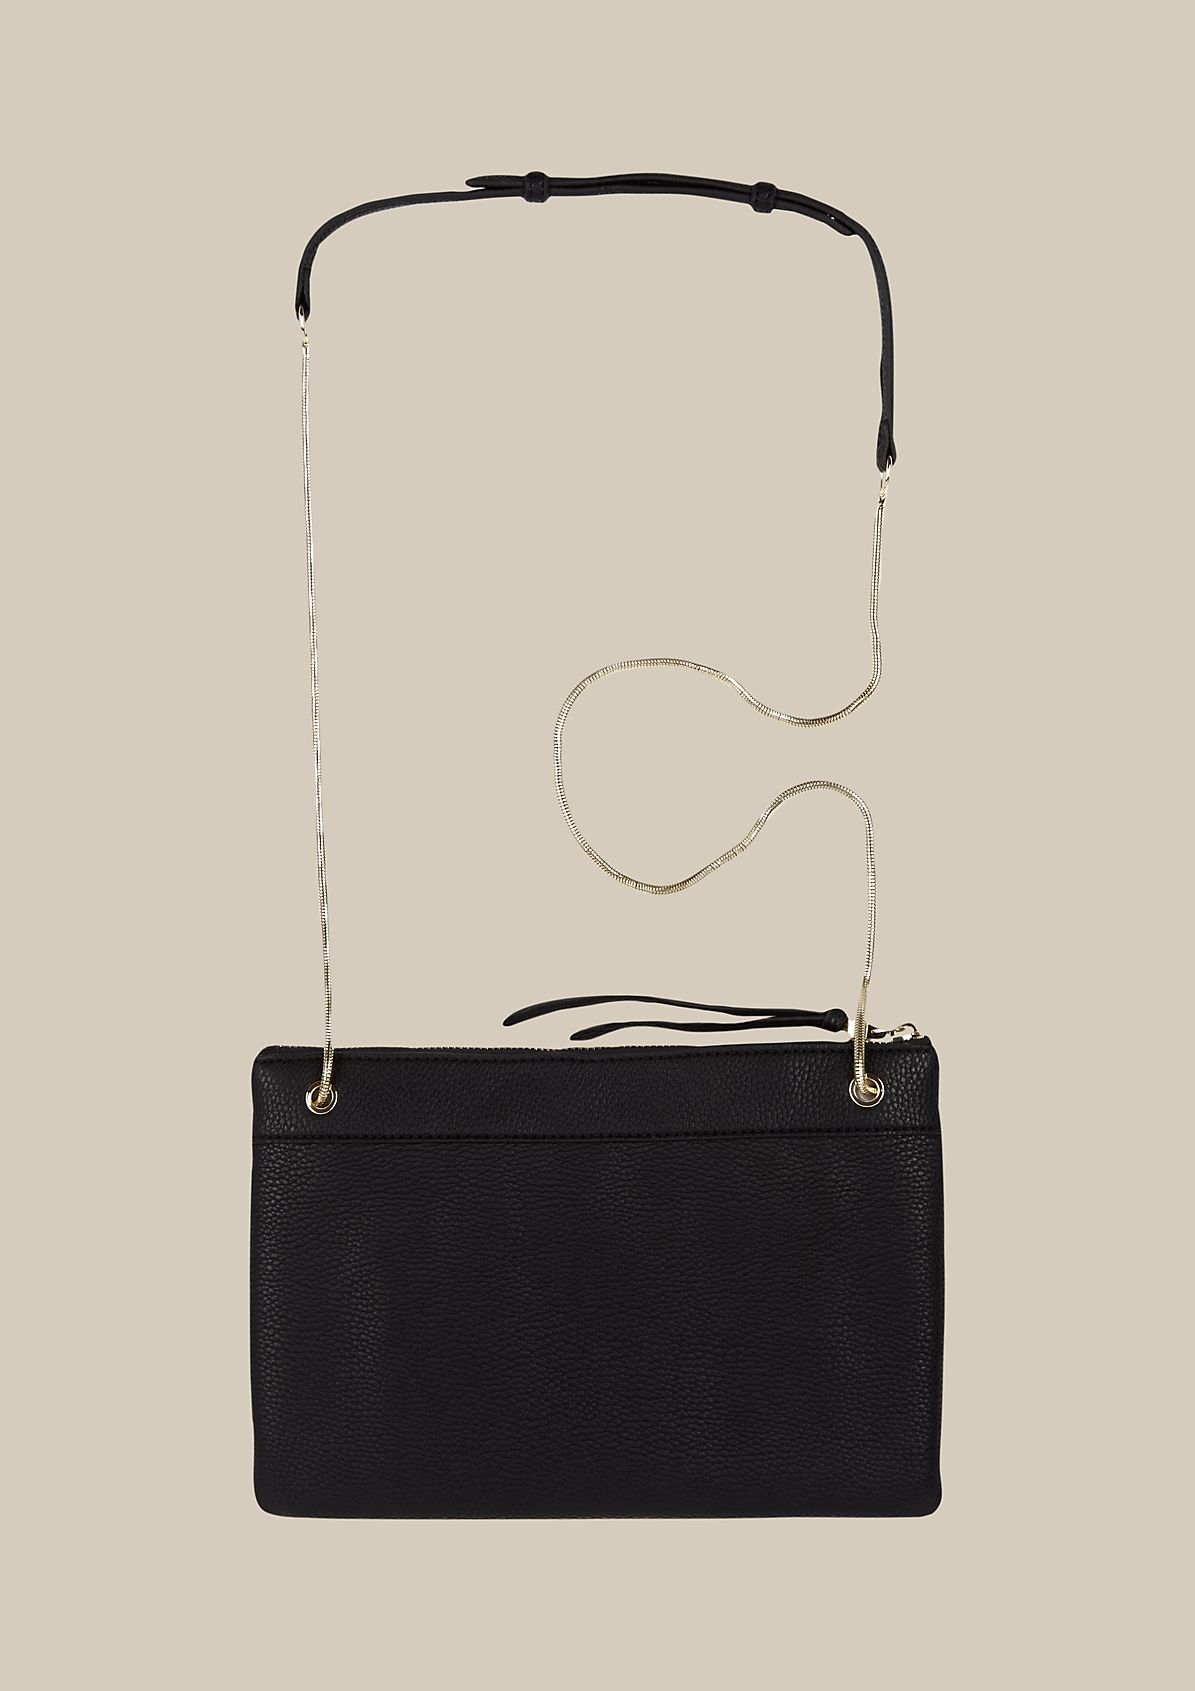 Extravagant evening bag in imitation leather from s.Oliver